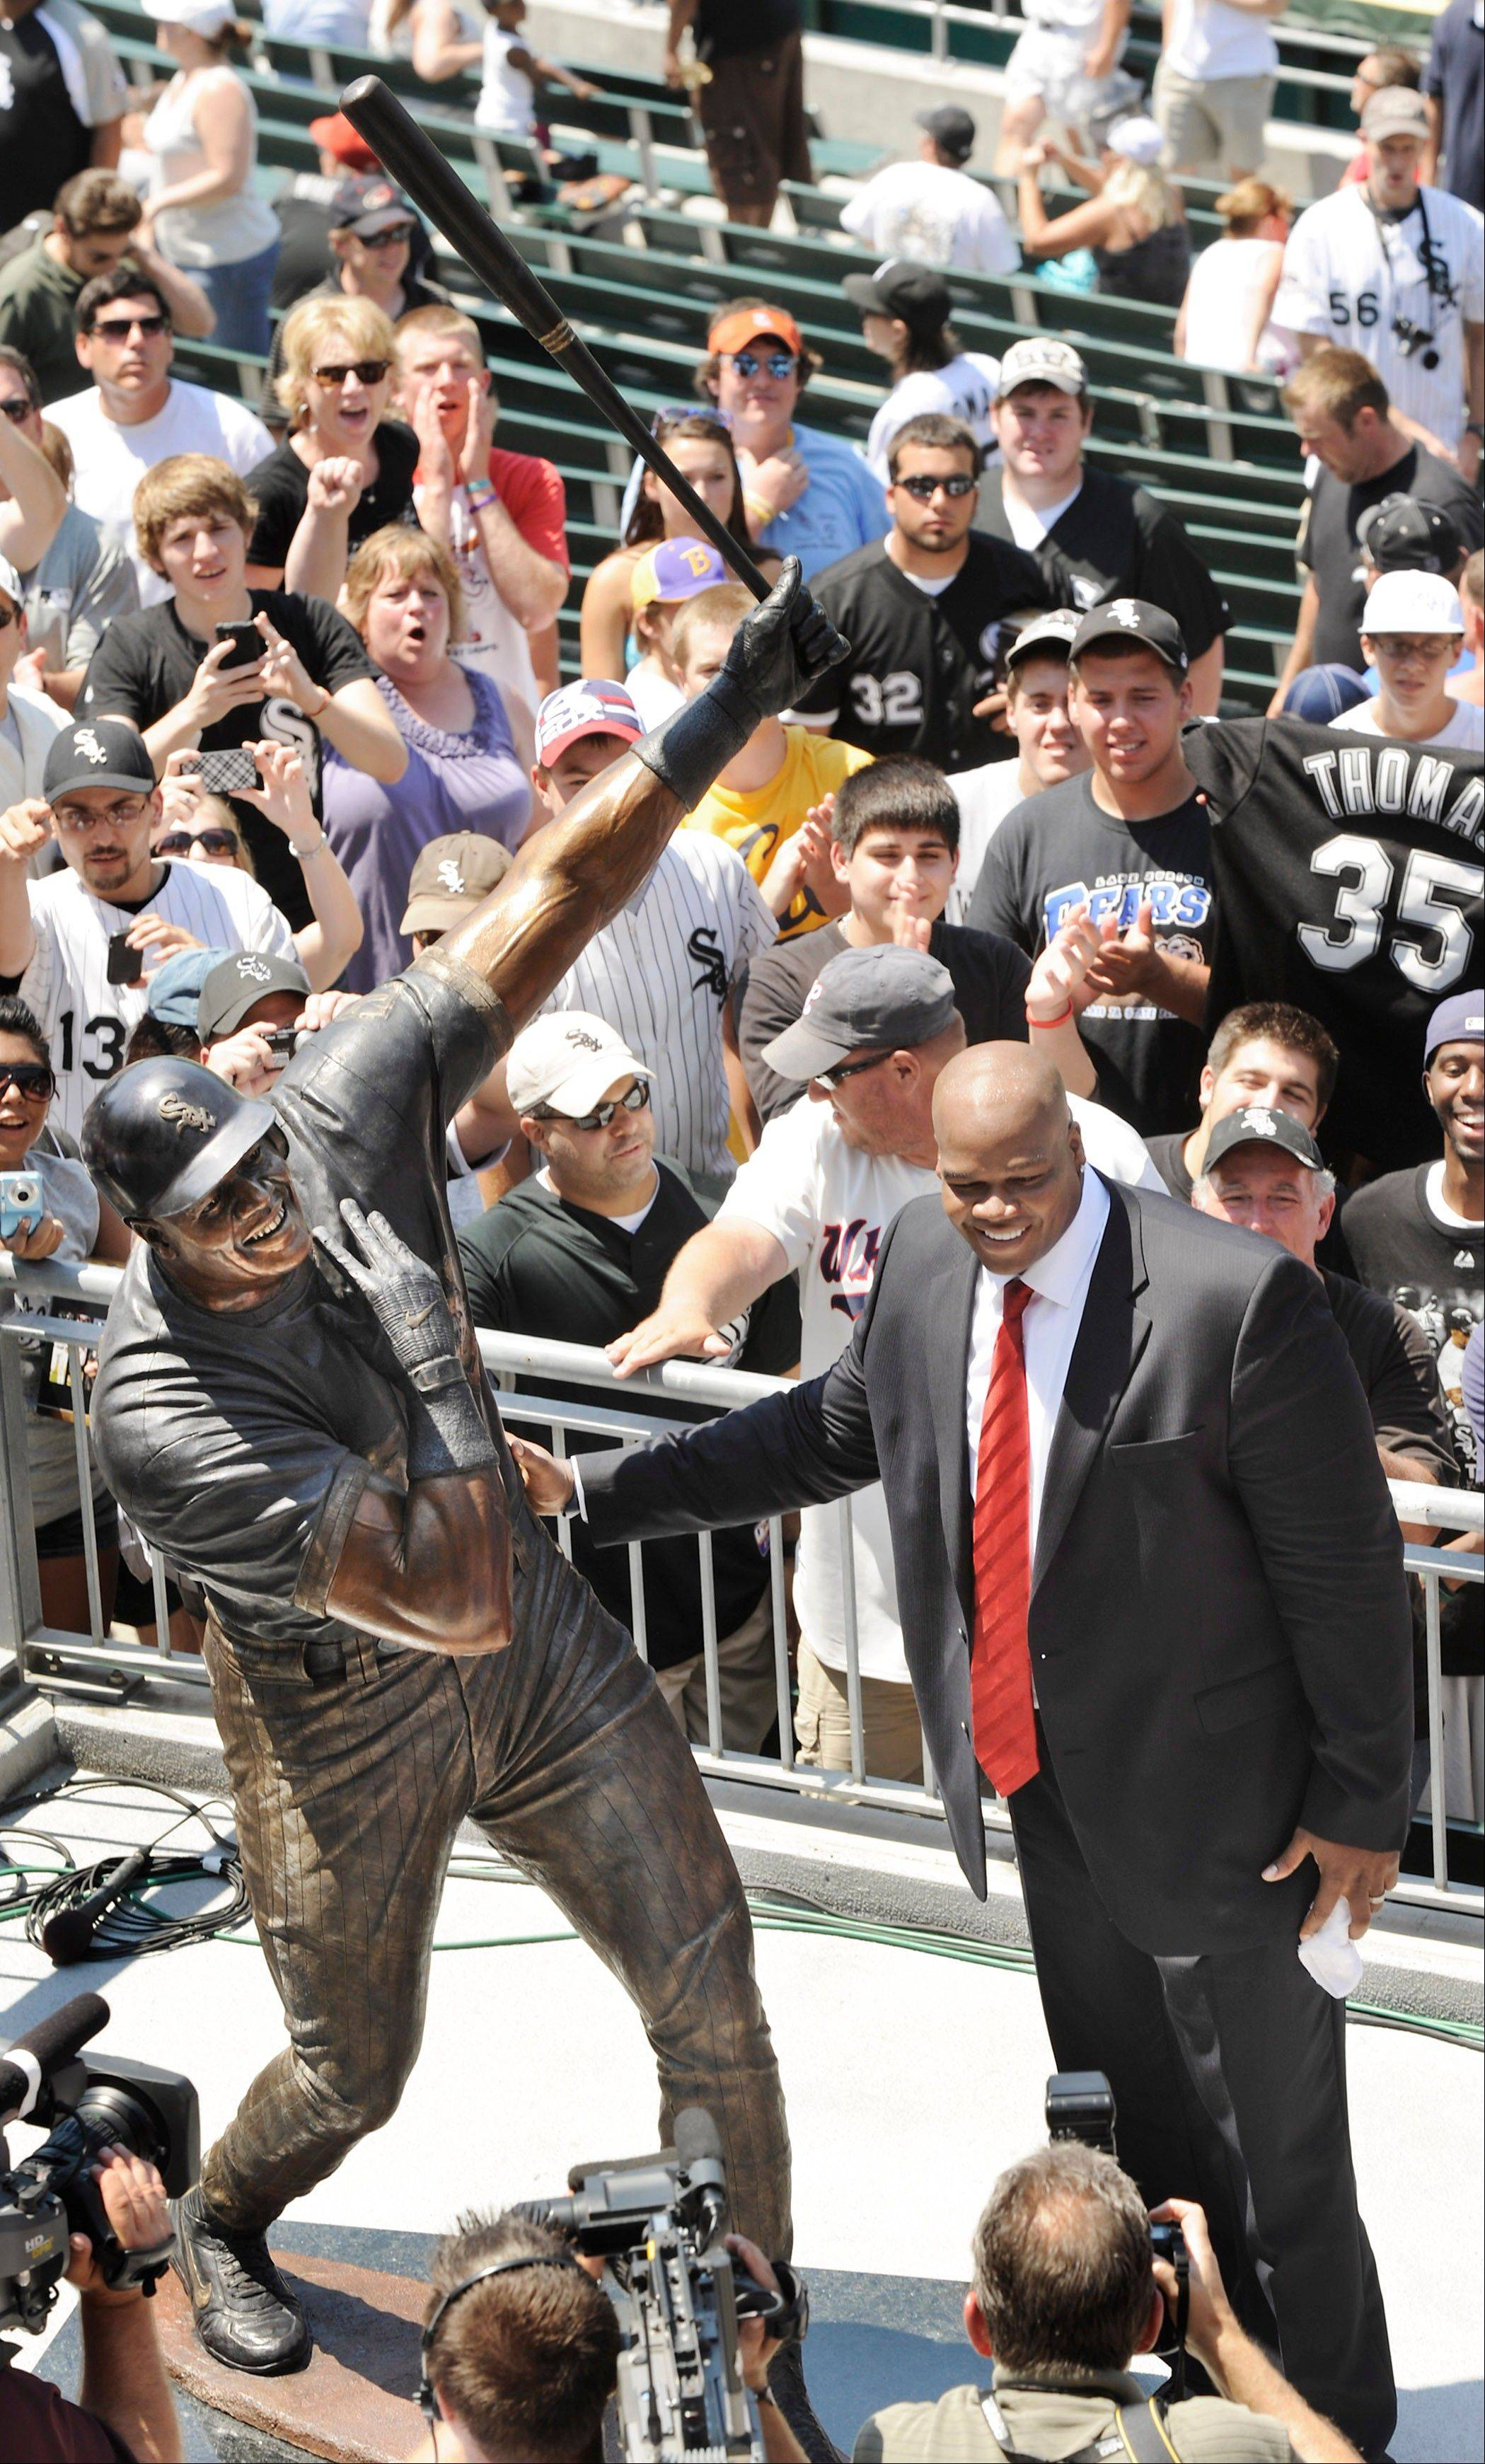 Frank Thomas, considered the best hitter in White Sox history, poses with a statue of himself during an unveiling ceremony Sunday at U.S. Cellular Field.